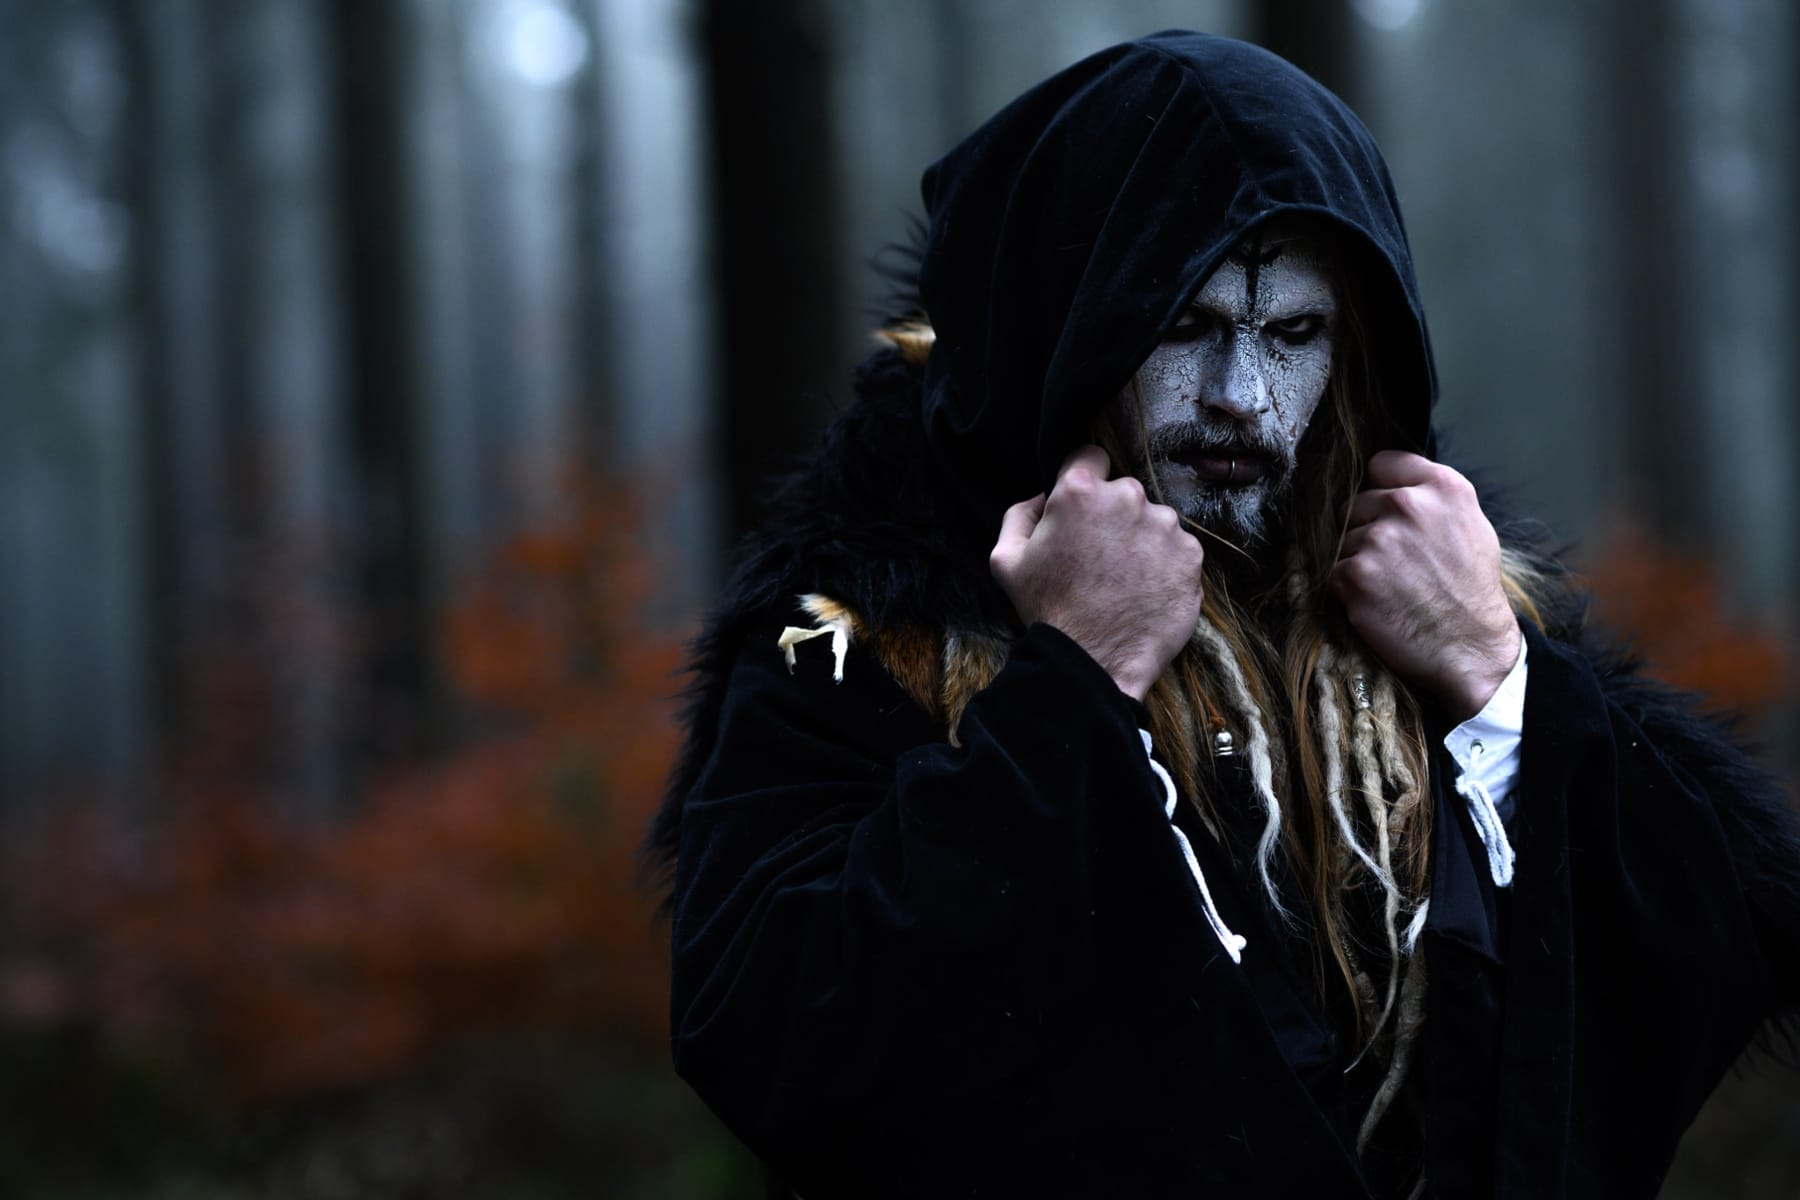 Black Metal takes Norway's Everyday Racisms to the Extreme